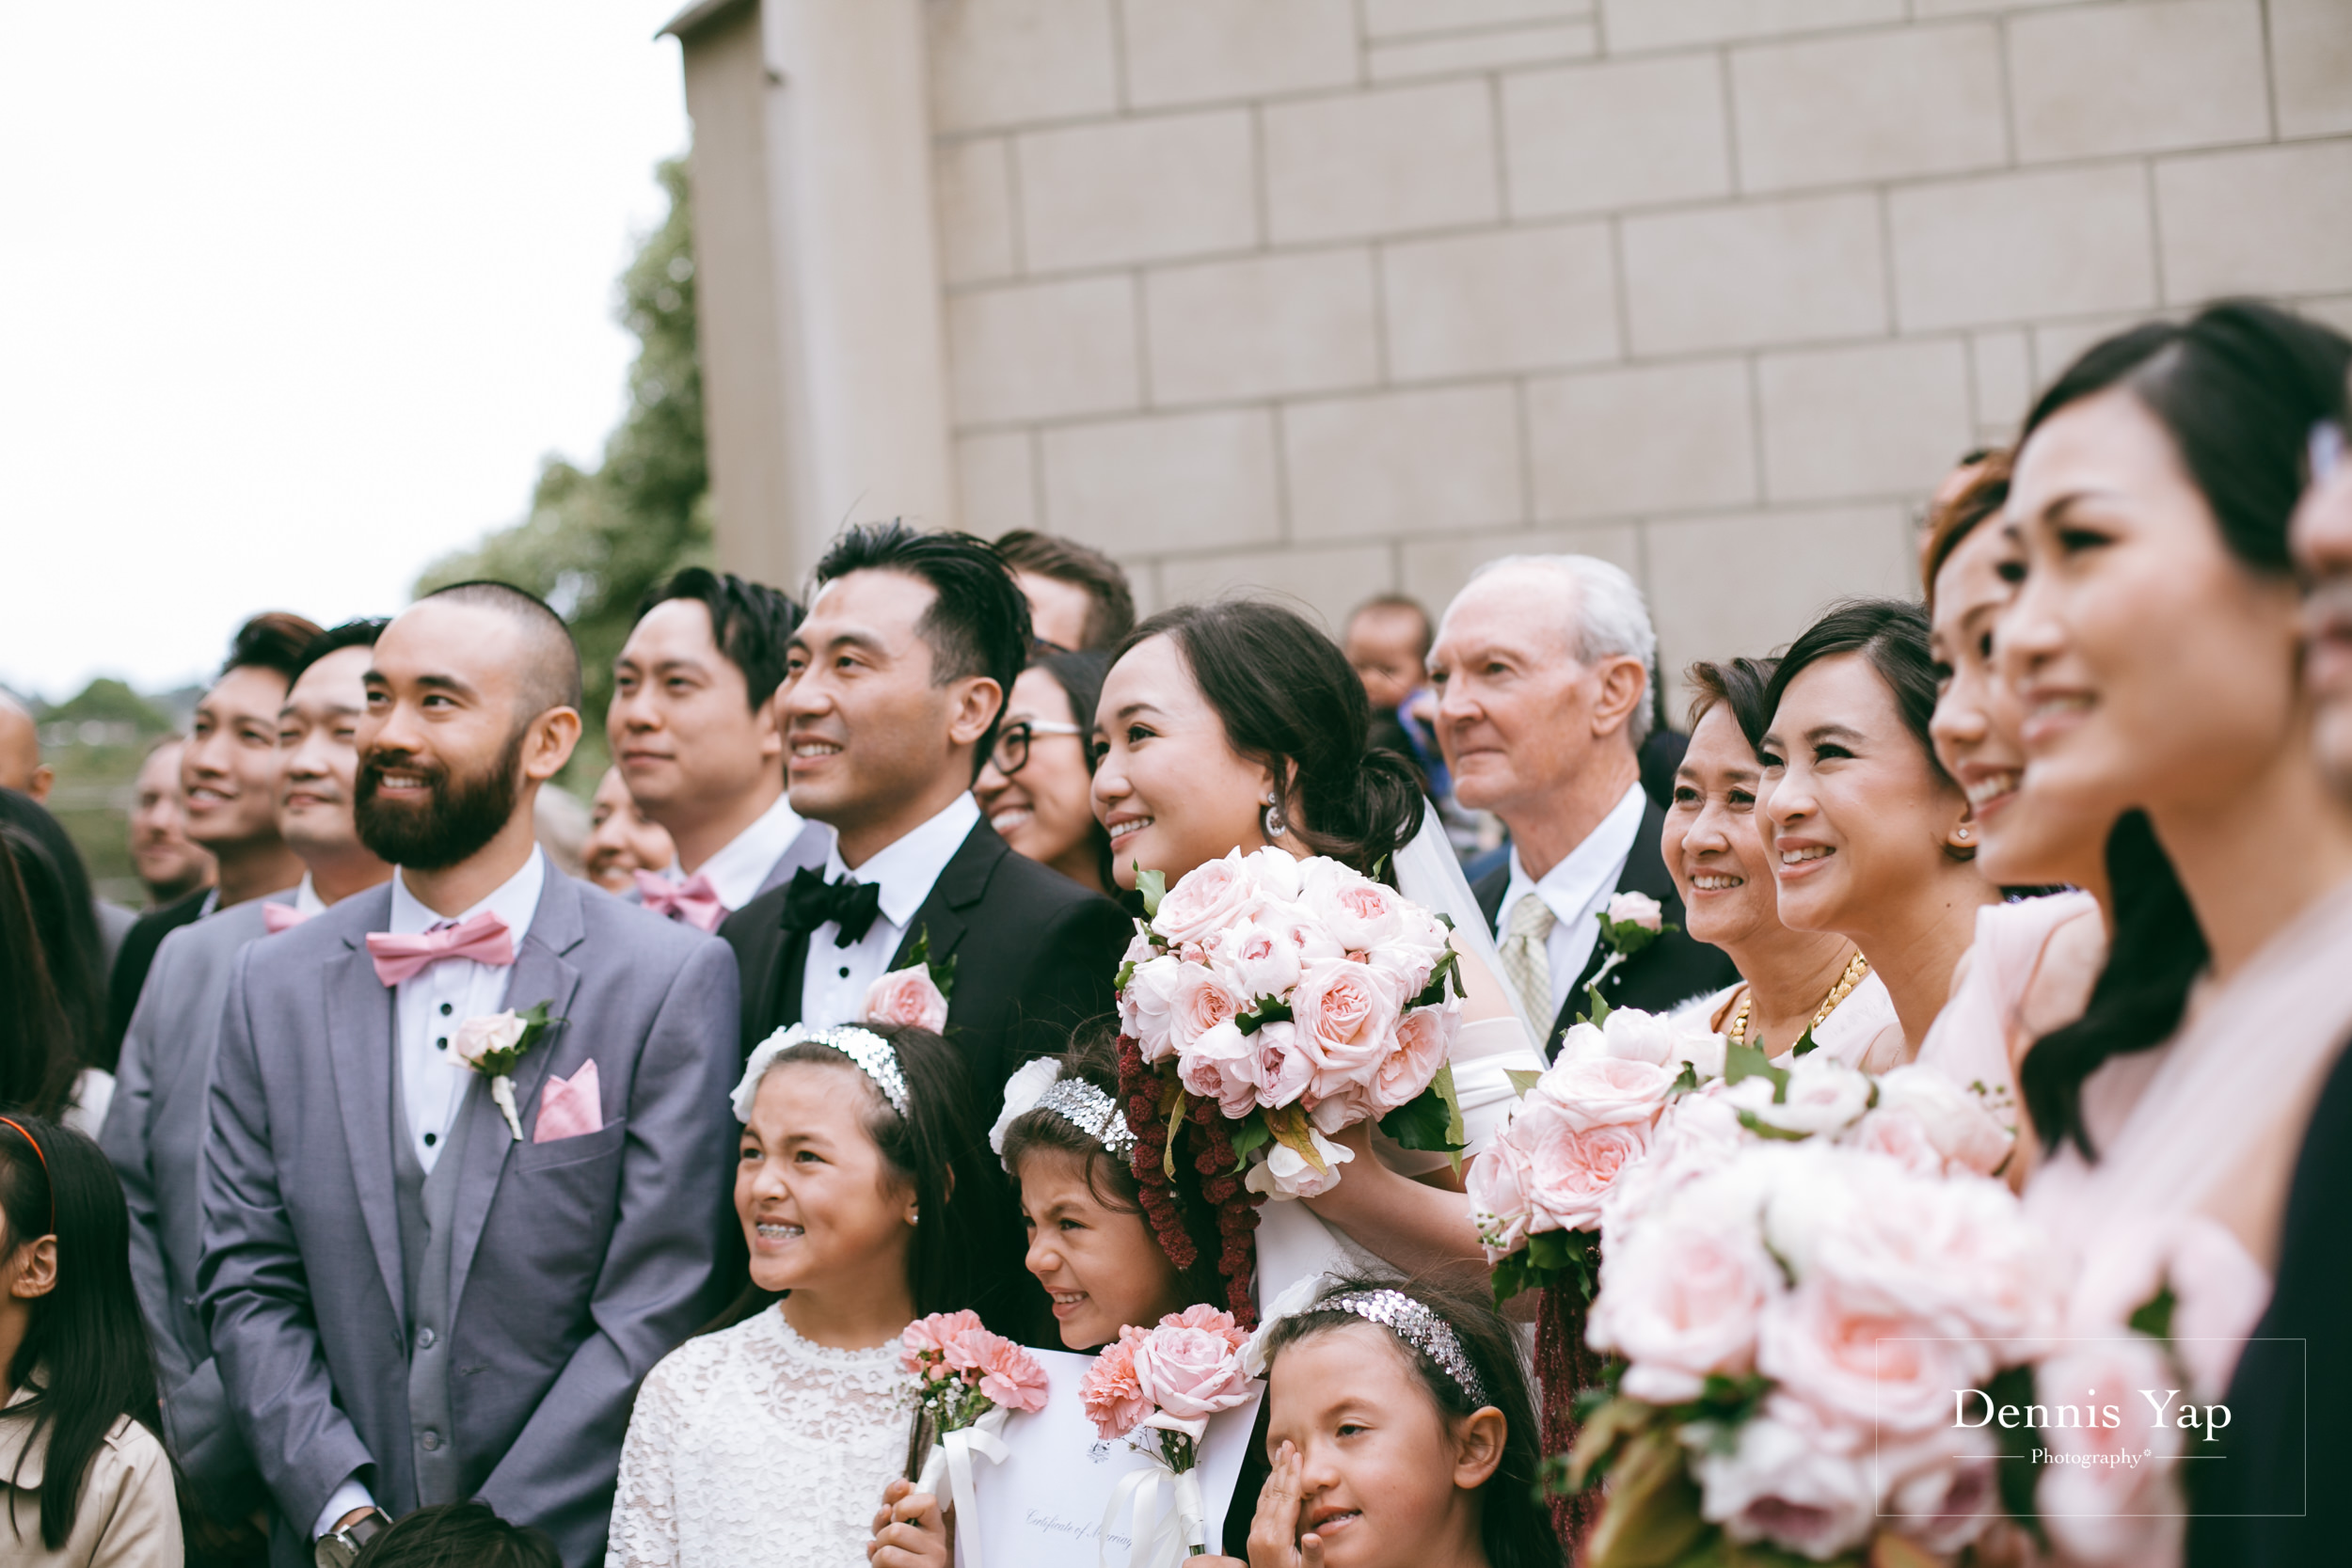 tony daphne wedding day melbourne RACV dennis yap photography malaysia top photographer beloved real moments-39.jpg